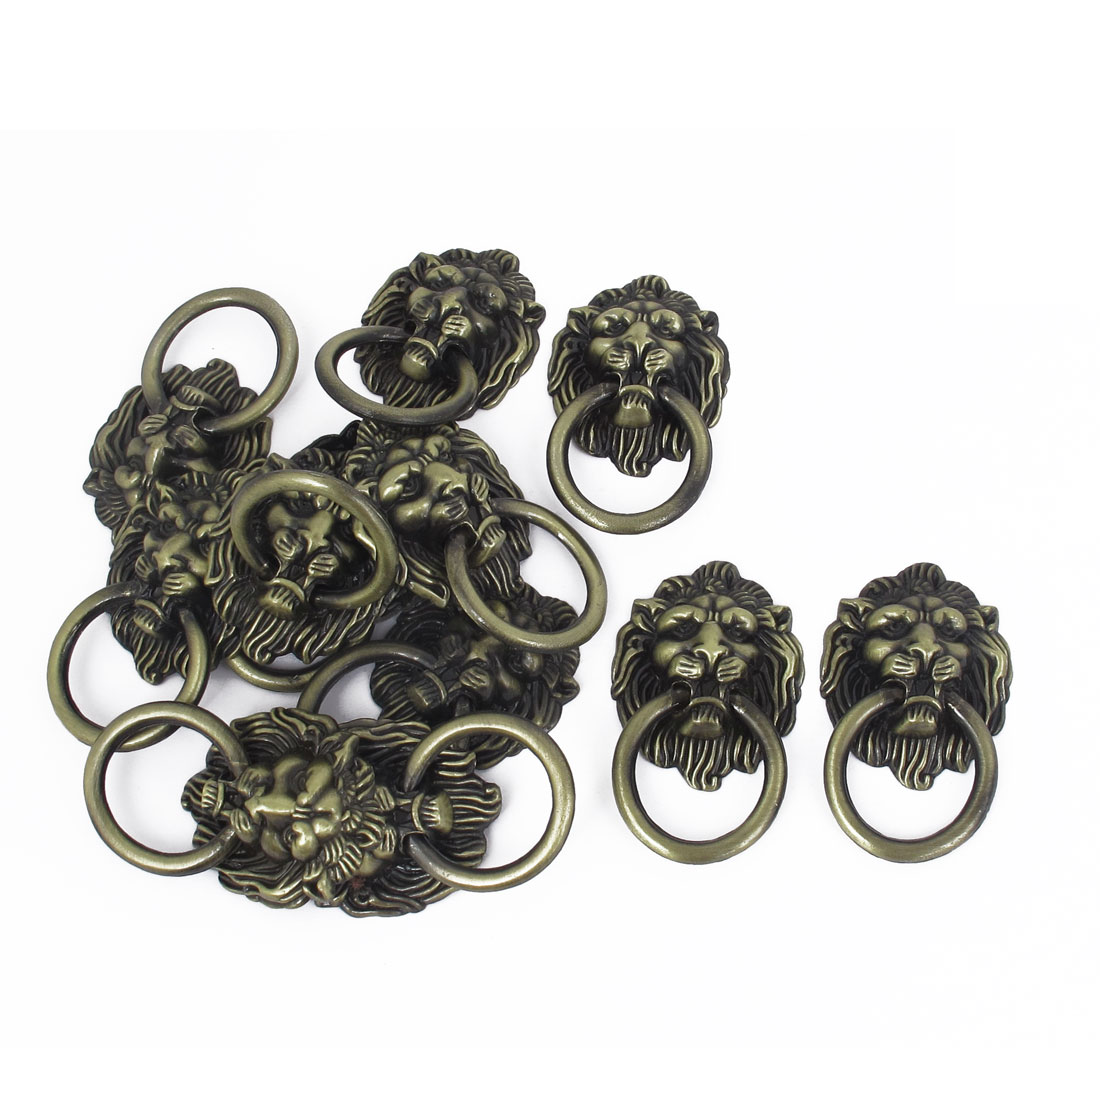 Lion Head Shape Metal Pull Knobs Handle 4mm Male Thread Dia Bronze Tone 12 Pcs